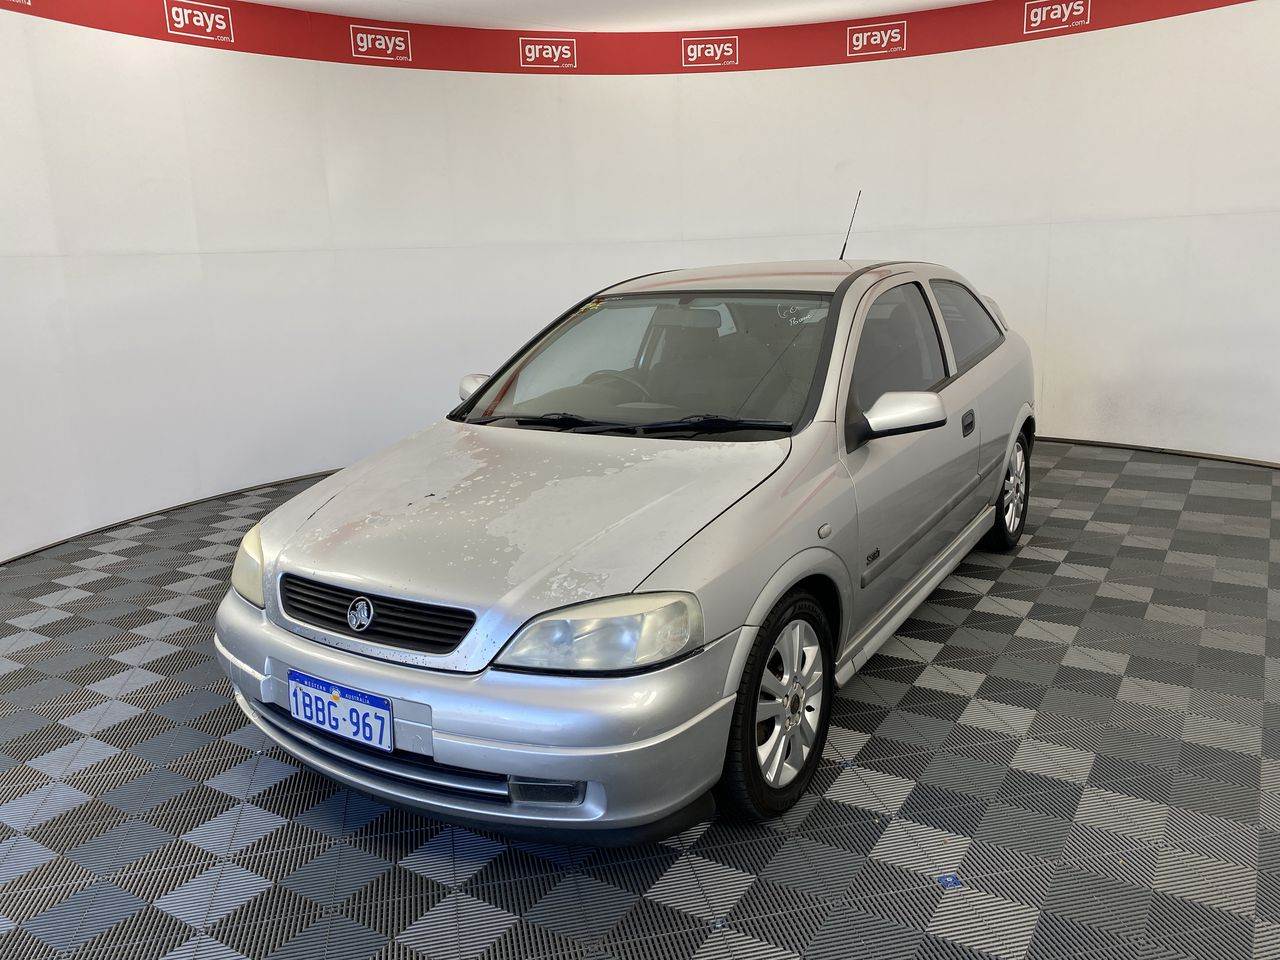 2001 Holden Astra SRI TS Manual Hatchback